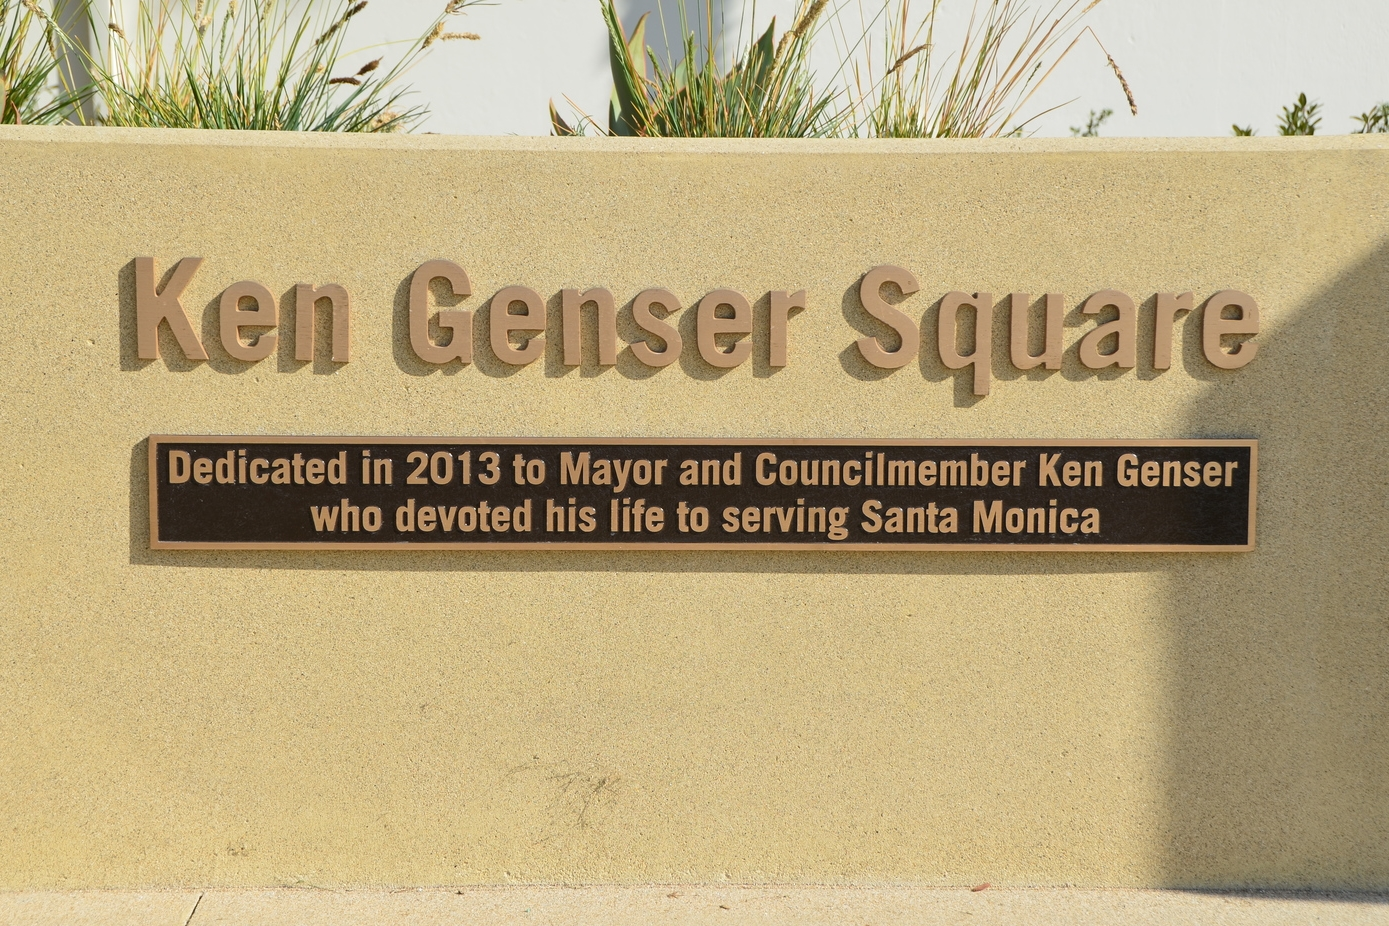 The dedication plaque in front of City Hall